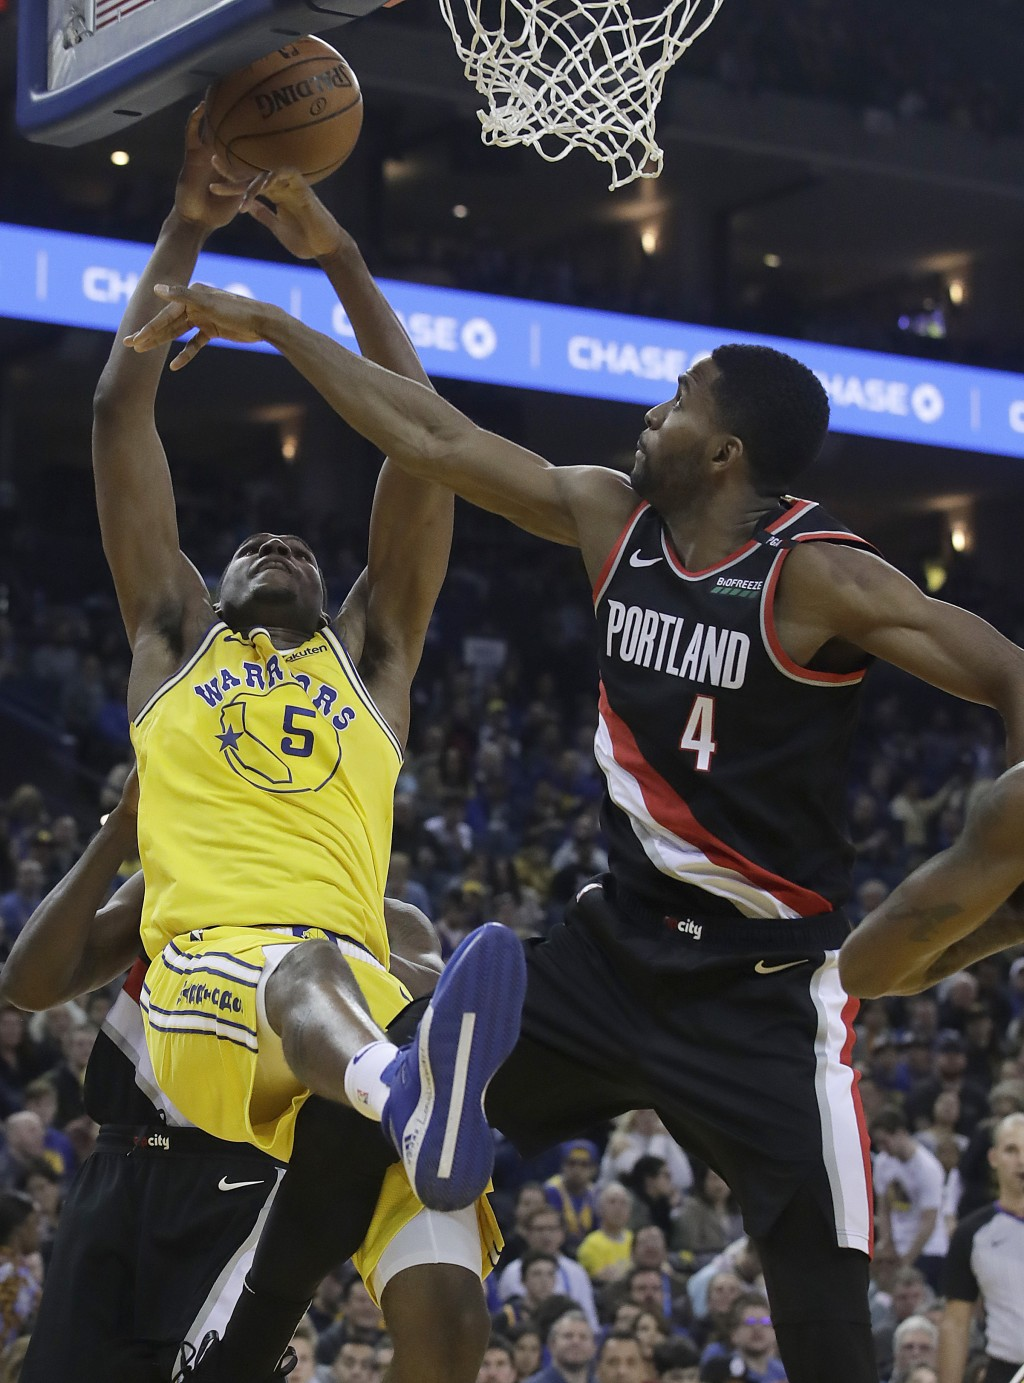 Golden State Warriors forward Kevon Looney (5) reaches for the ball next to Portland Trail Blazers forward Maurice Harkless (4) during the first half ...